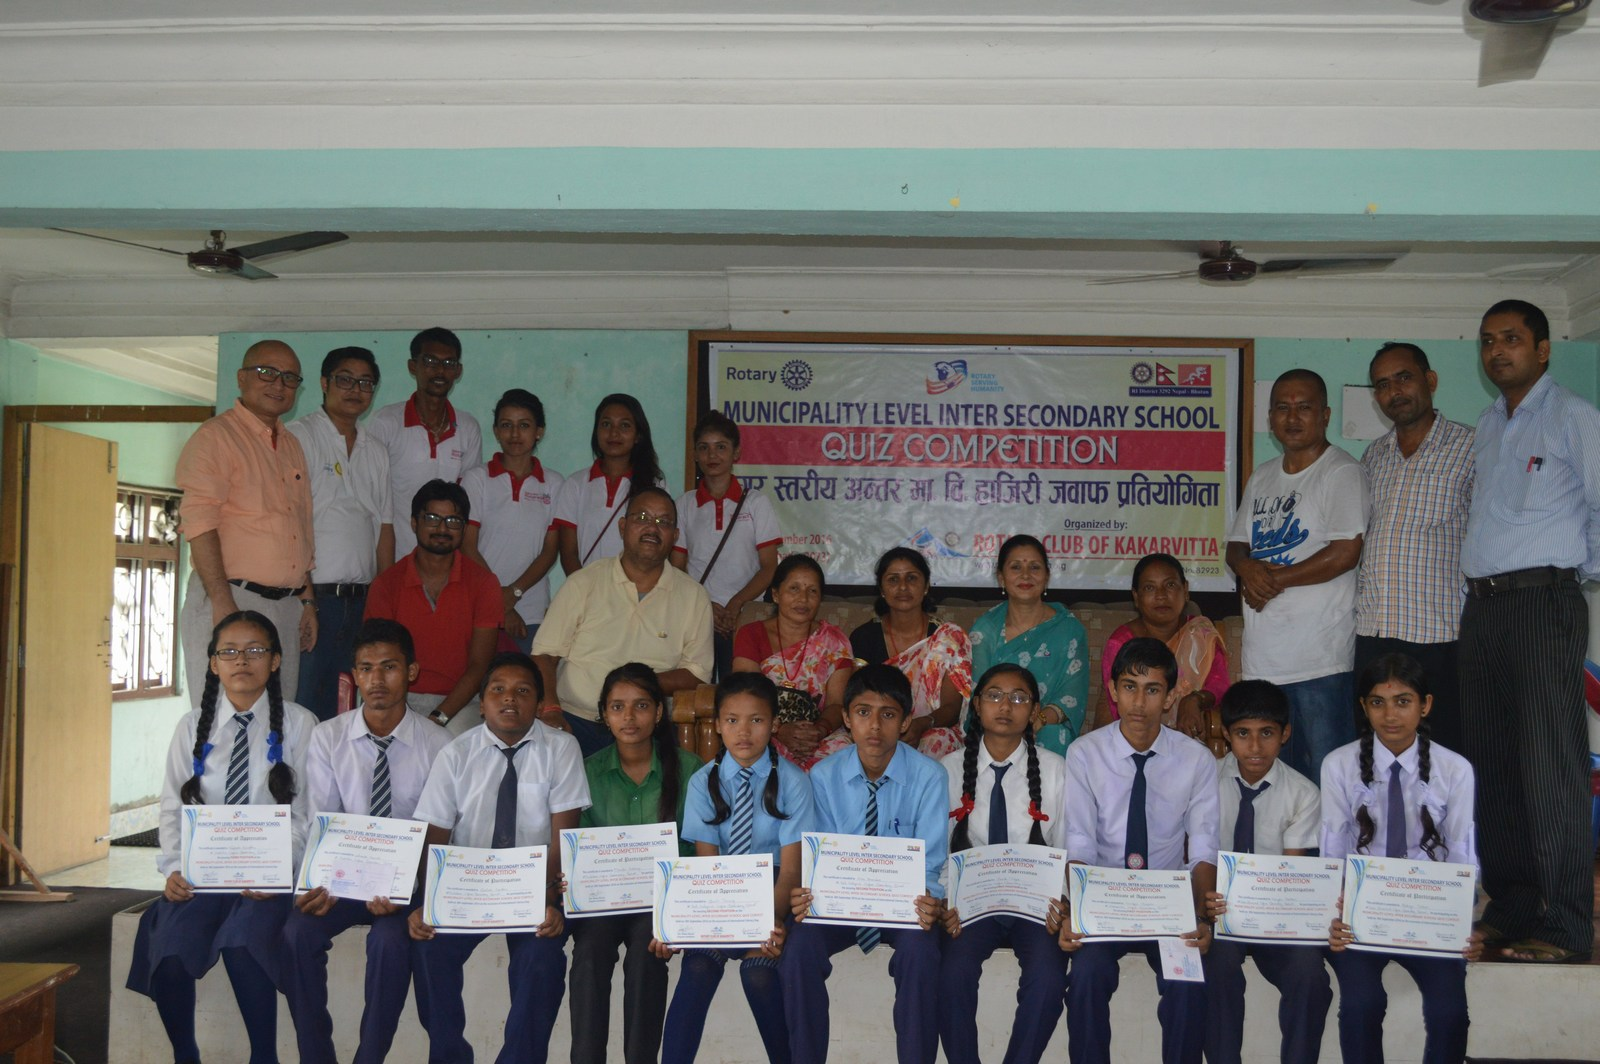 Municipality-Level-Inter-Secondary-School-Quiz-Contest-2016-Rotary-Club-of-Kakarvitta-71